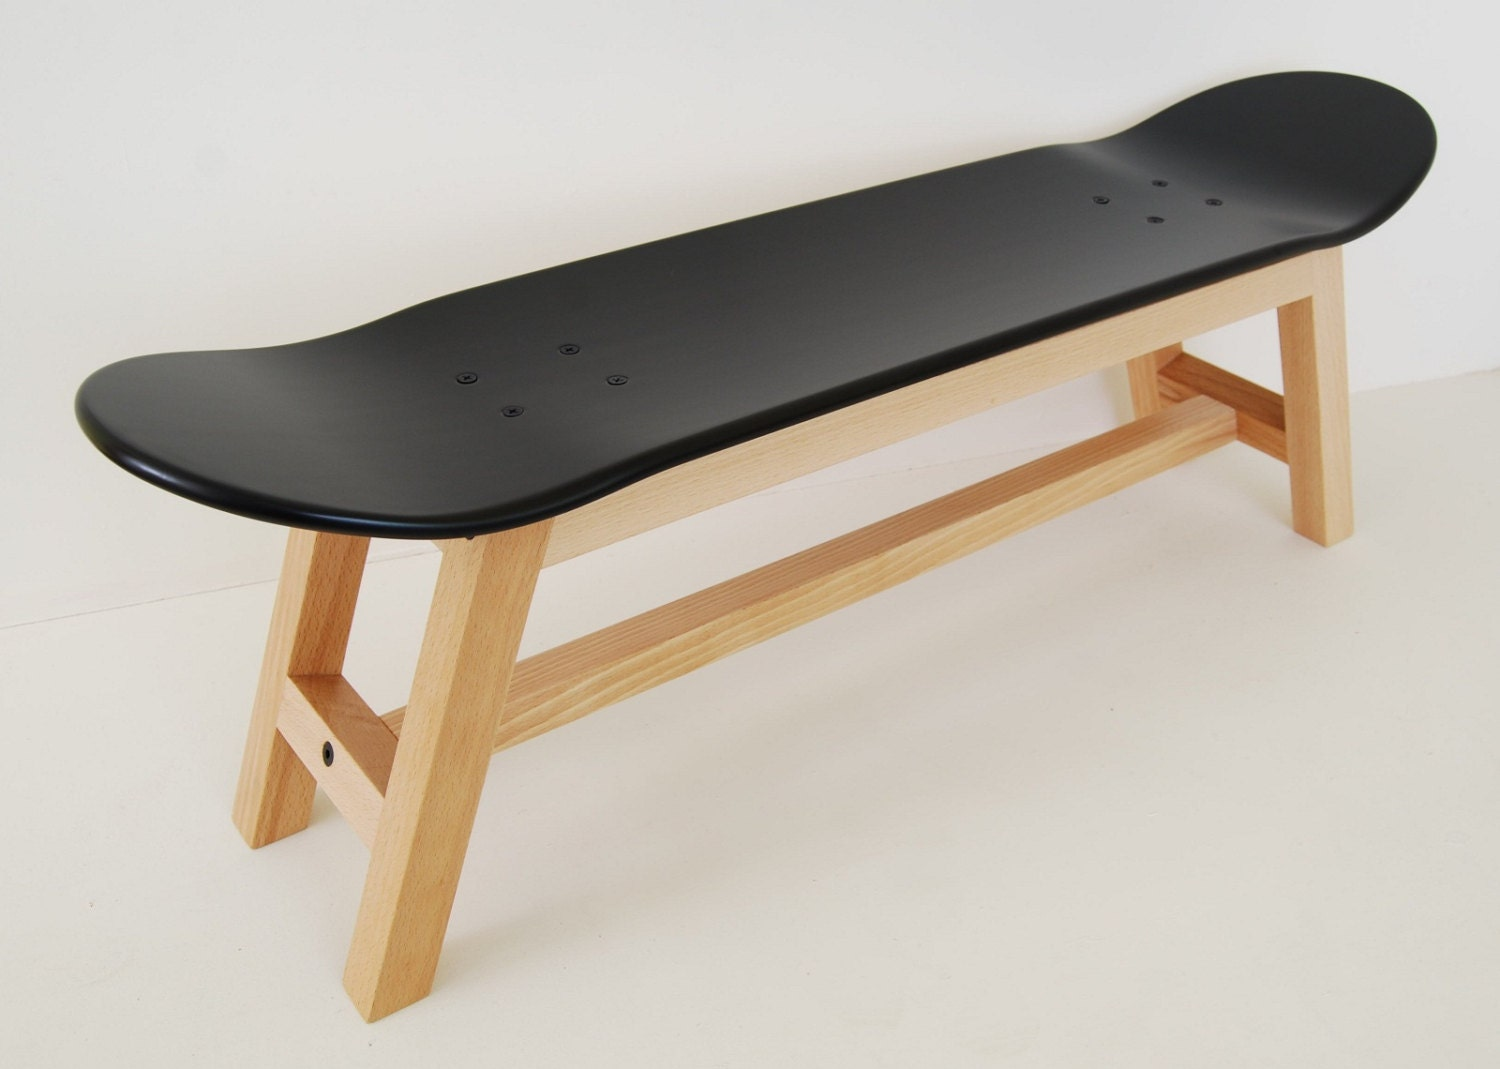 Skateboard Bedroom Furniture Skateboard Furniture Pictures To Pin On Pinterest Pinsdaddy